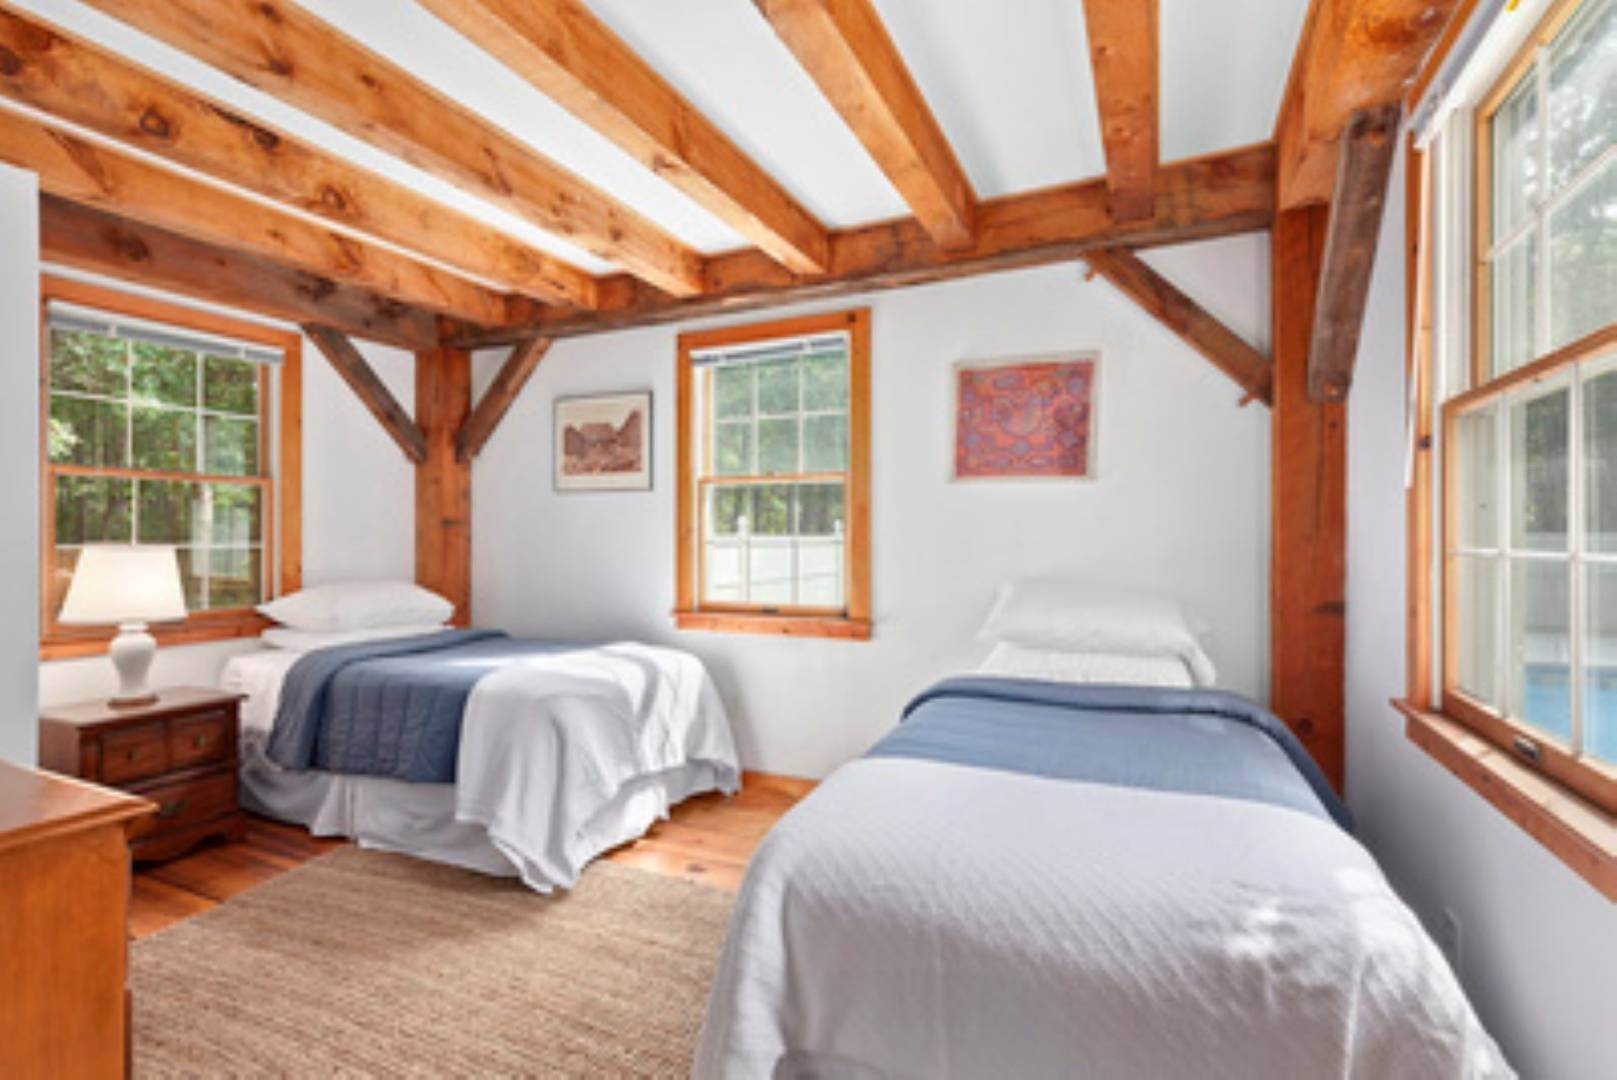 5. Single Family Home at Lovely Post-And-Beam Rental Wainscott, NY 11975